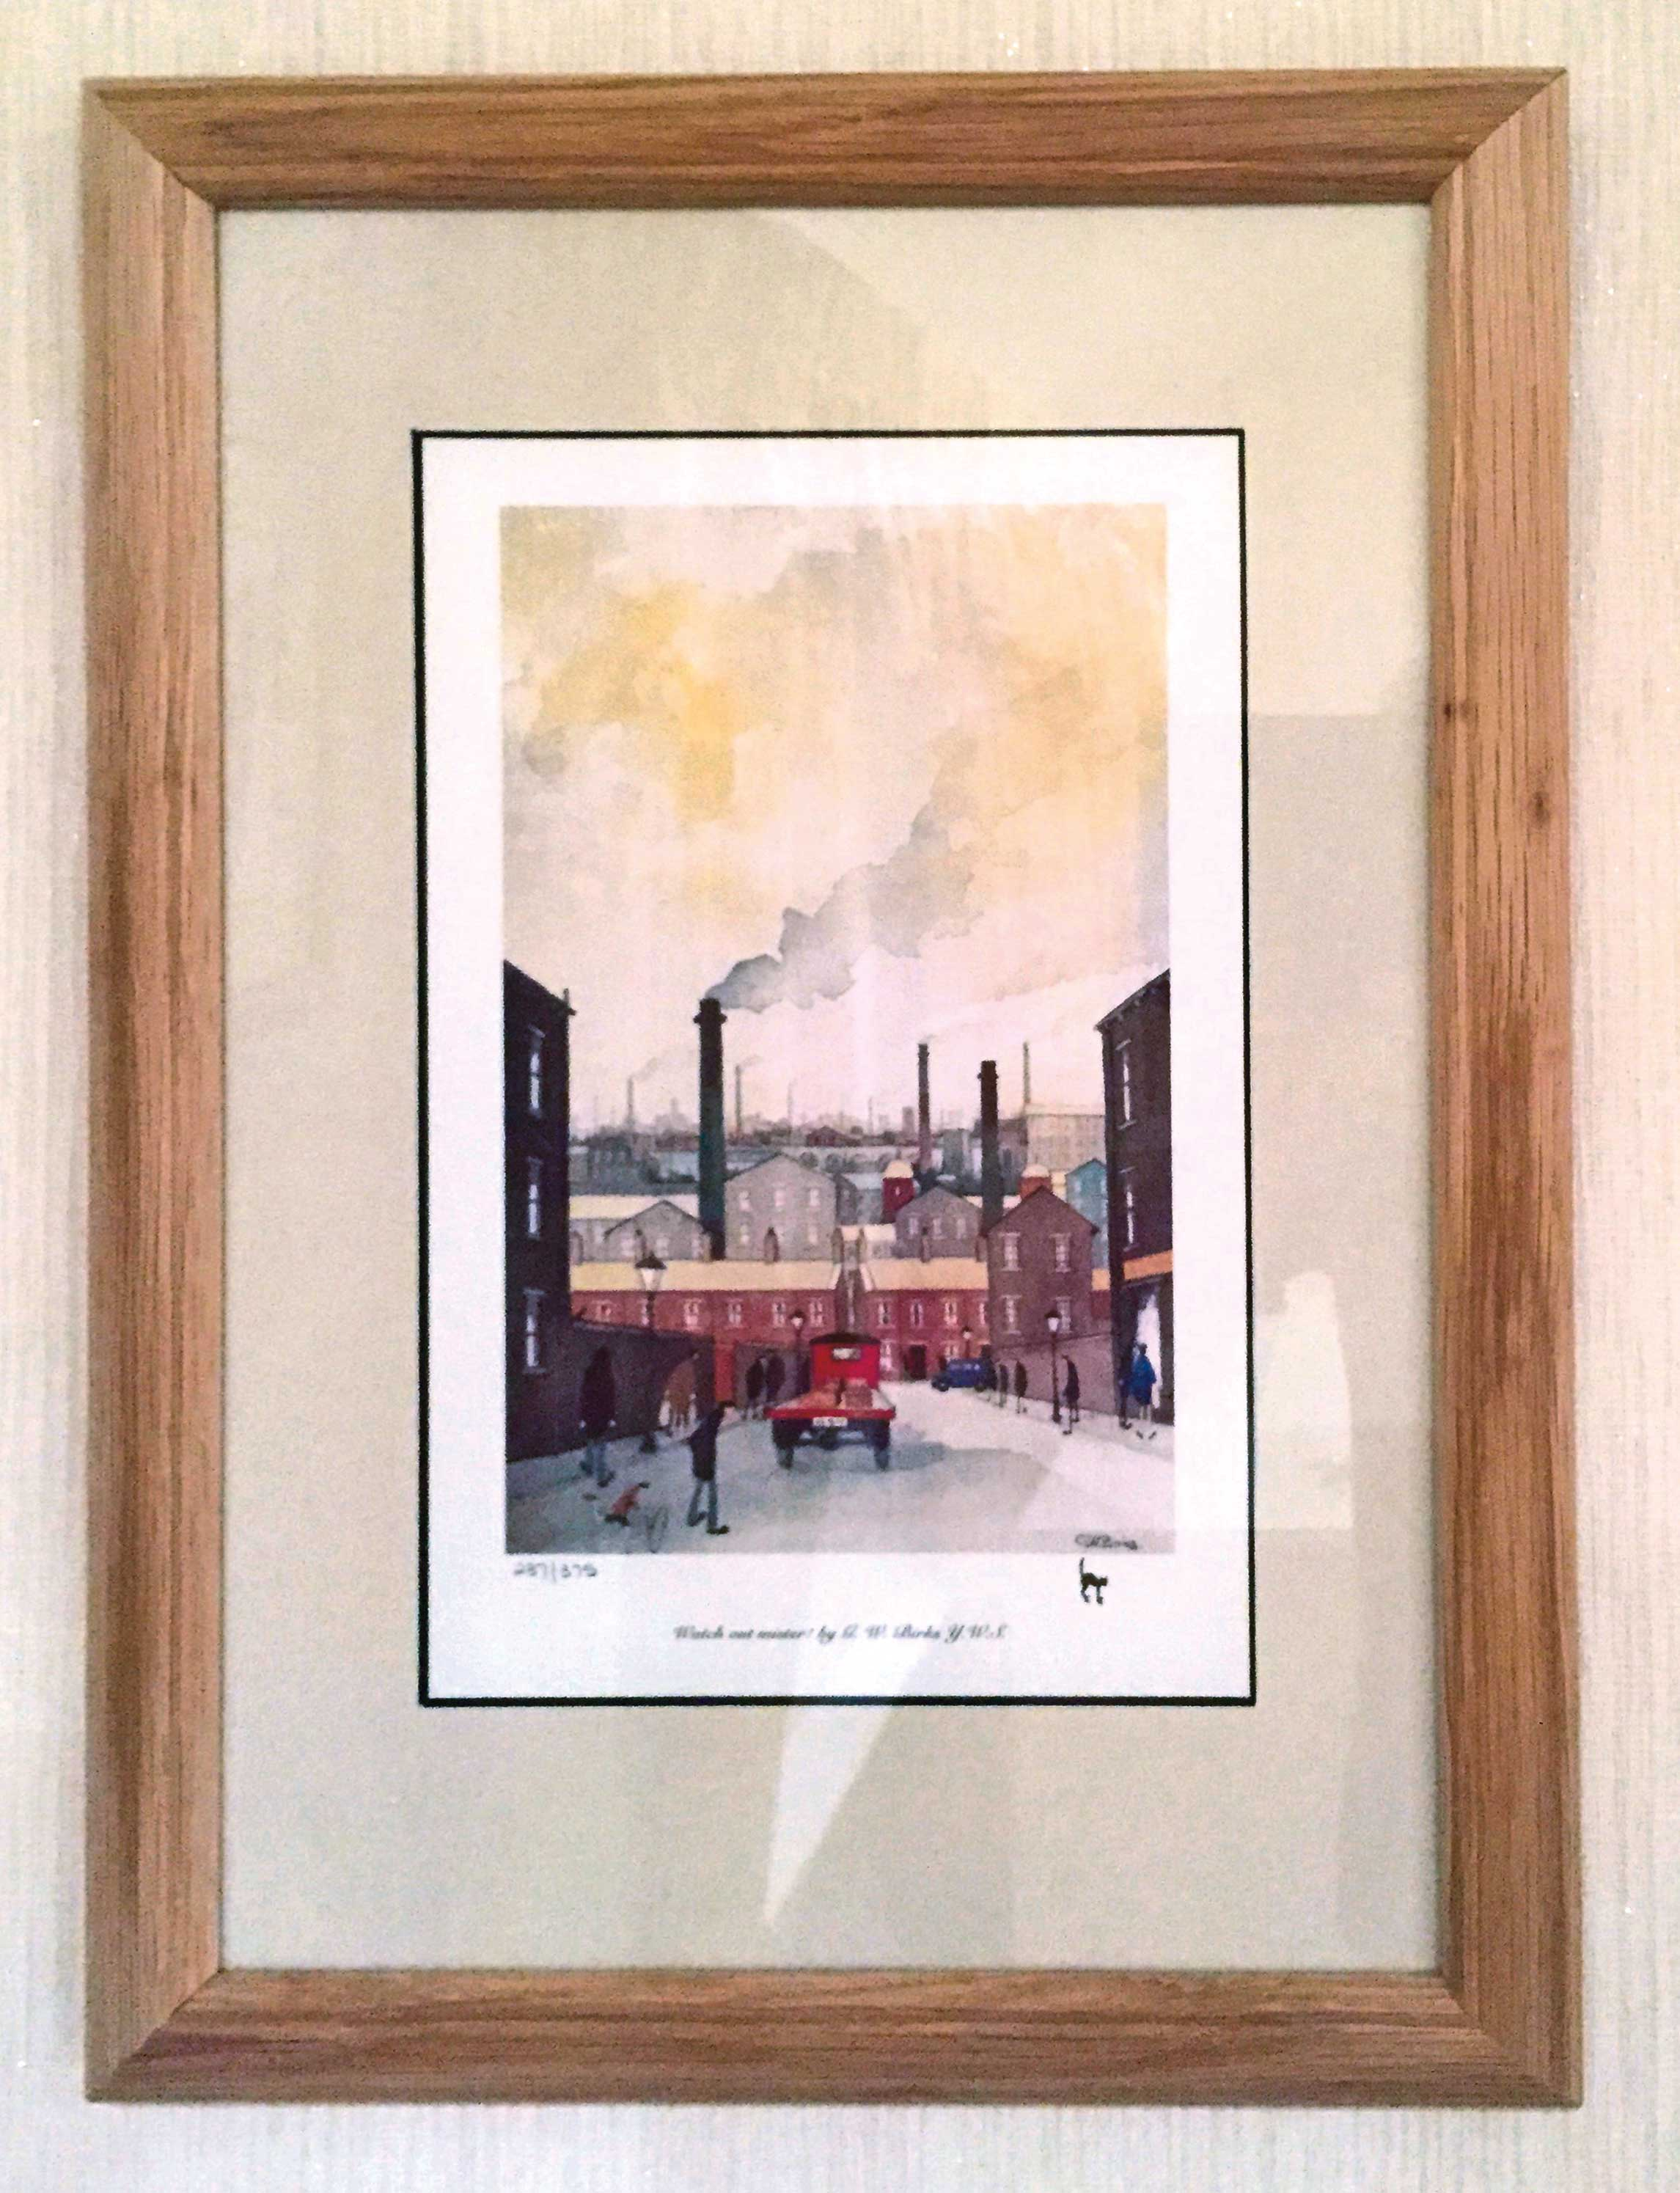 framed prints and paintings Trent Framing, Newark Nottinghamshire